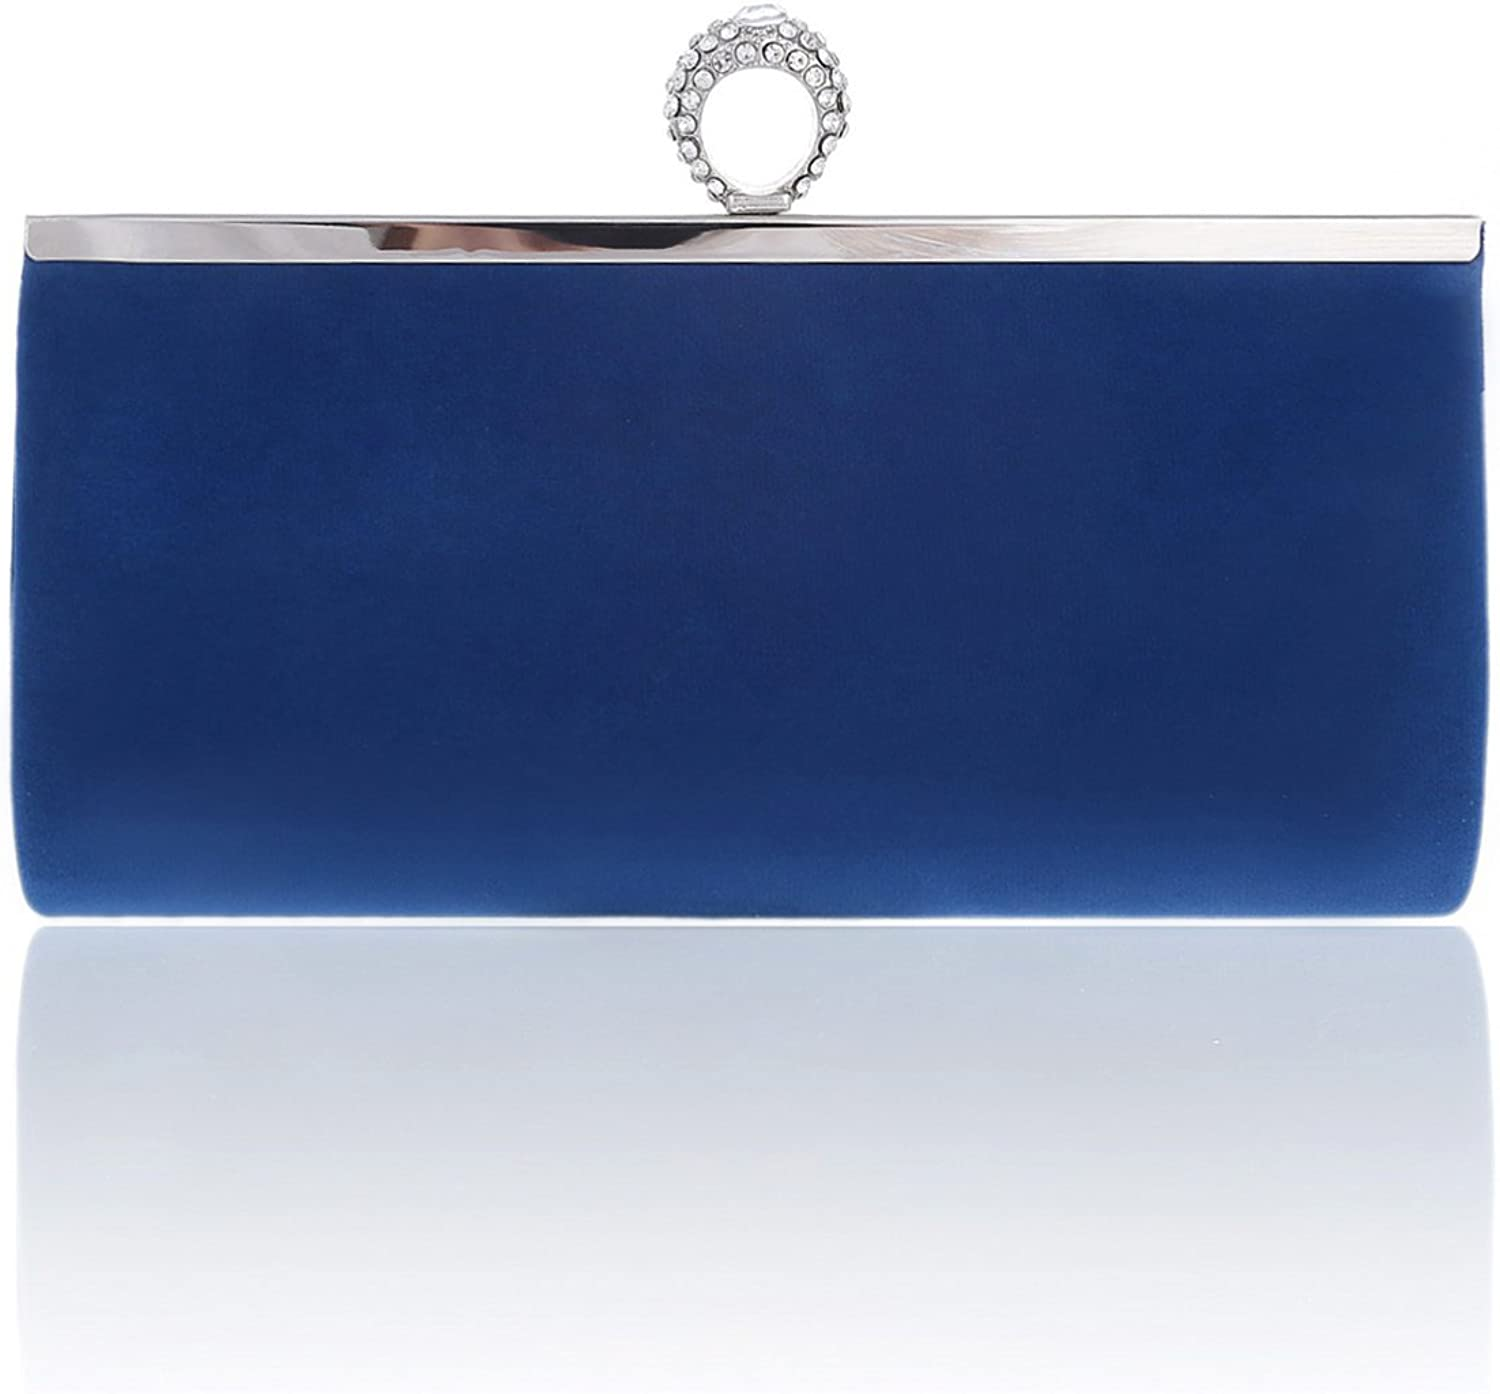 Damara Womens ORing Soft Cocktail Clutch Bag